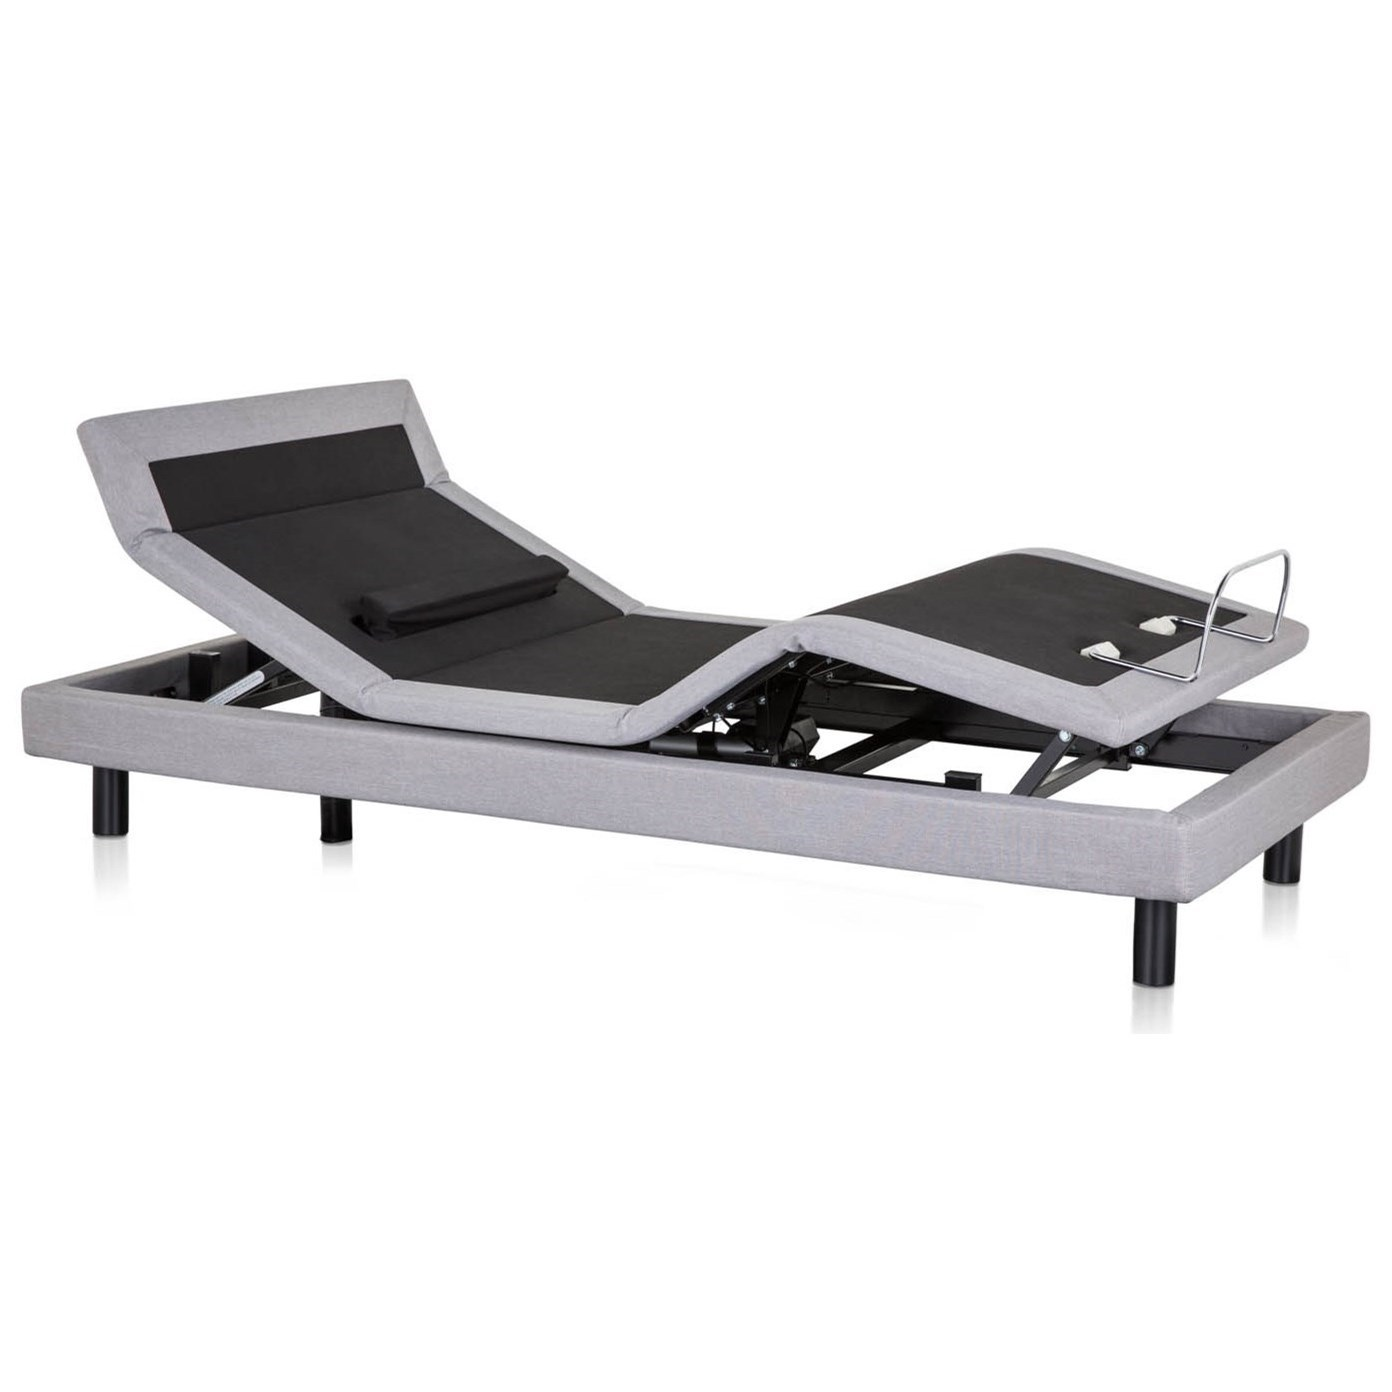 Malouf Structures S700 Adjustable Bed Base Queen S700 Adjustable Bed Base